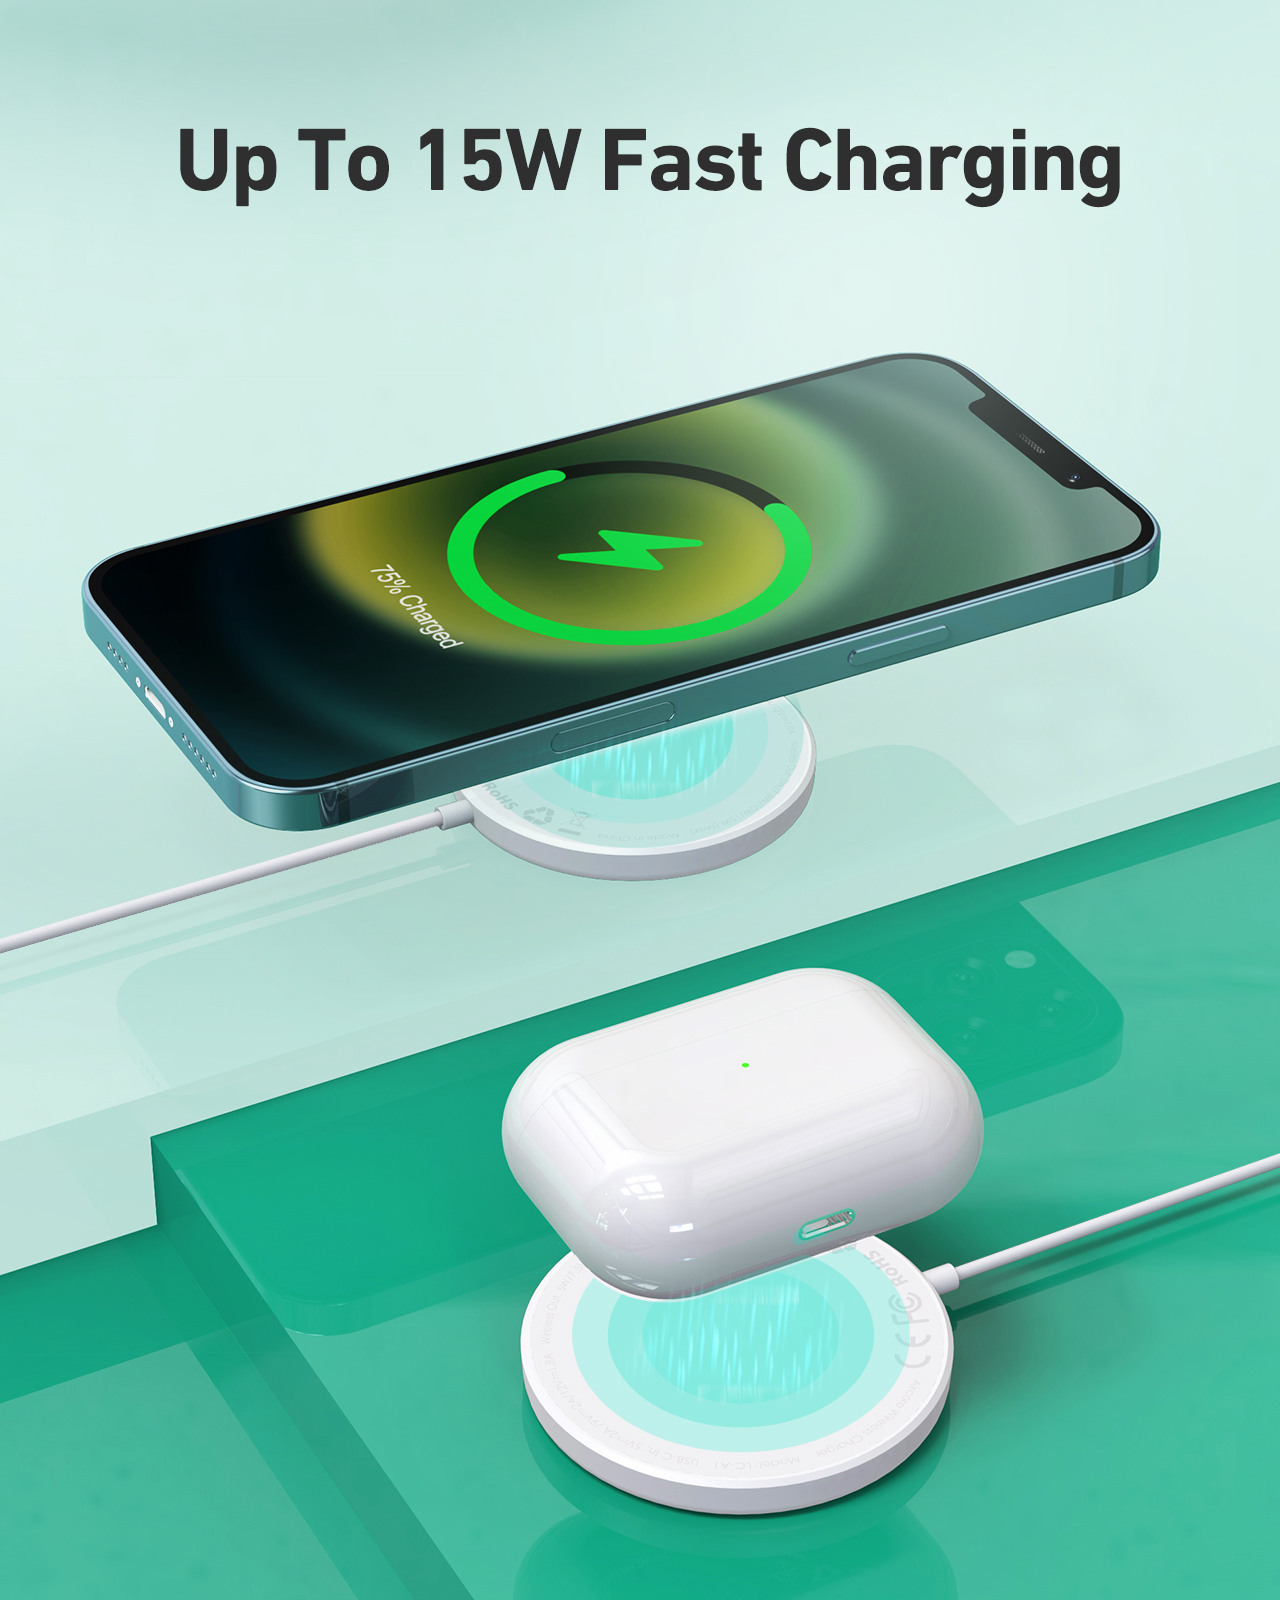 AUKEY Aircore 15W Magnetic Charger LC-A1-WT Wireless, white